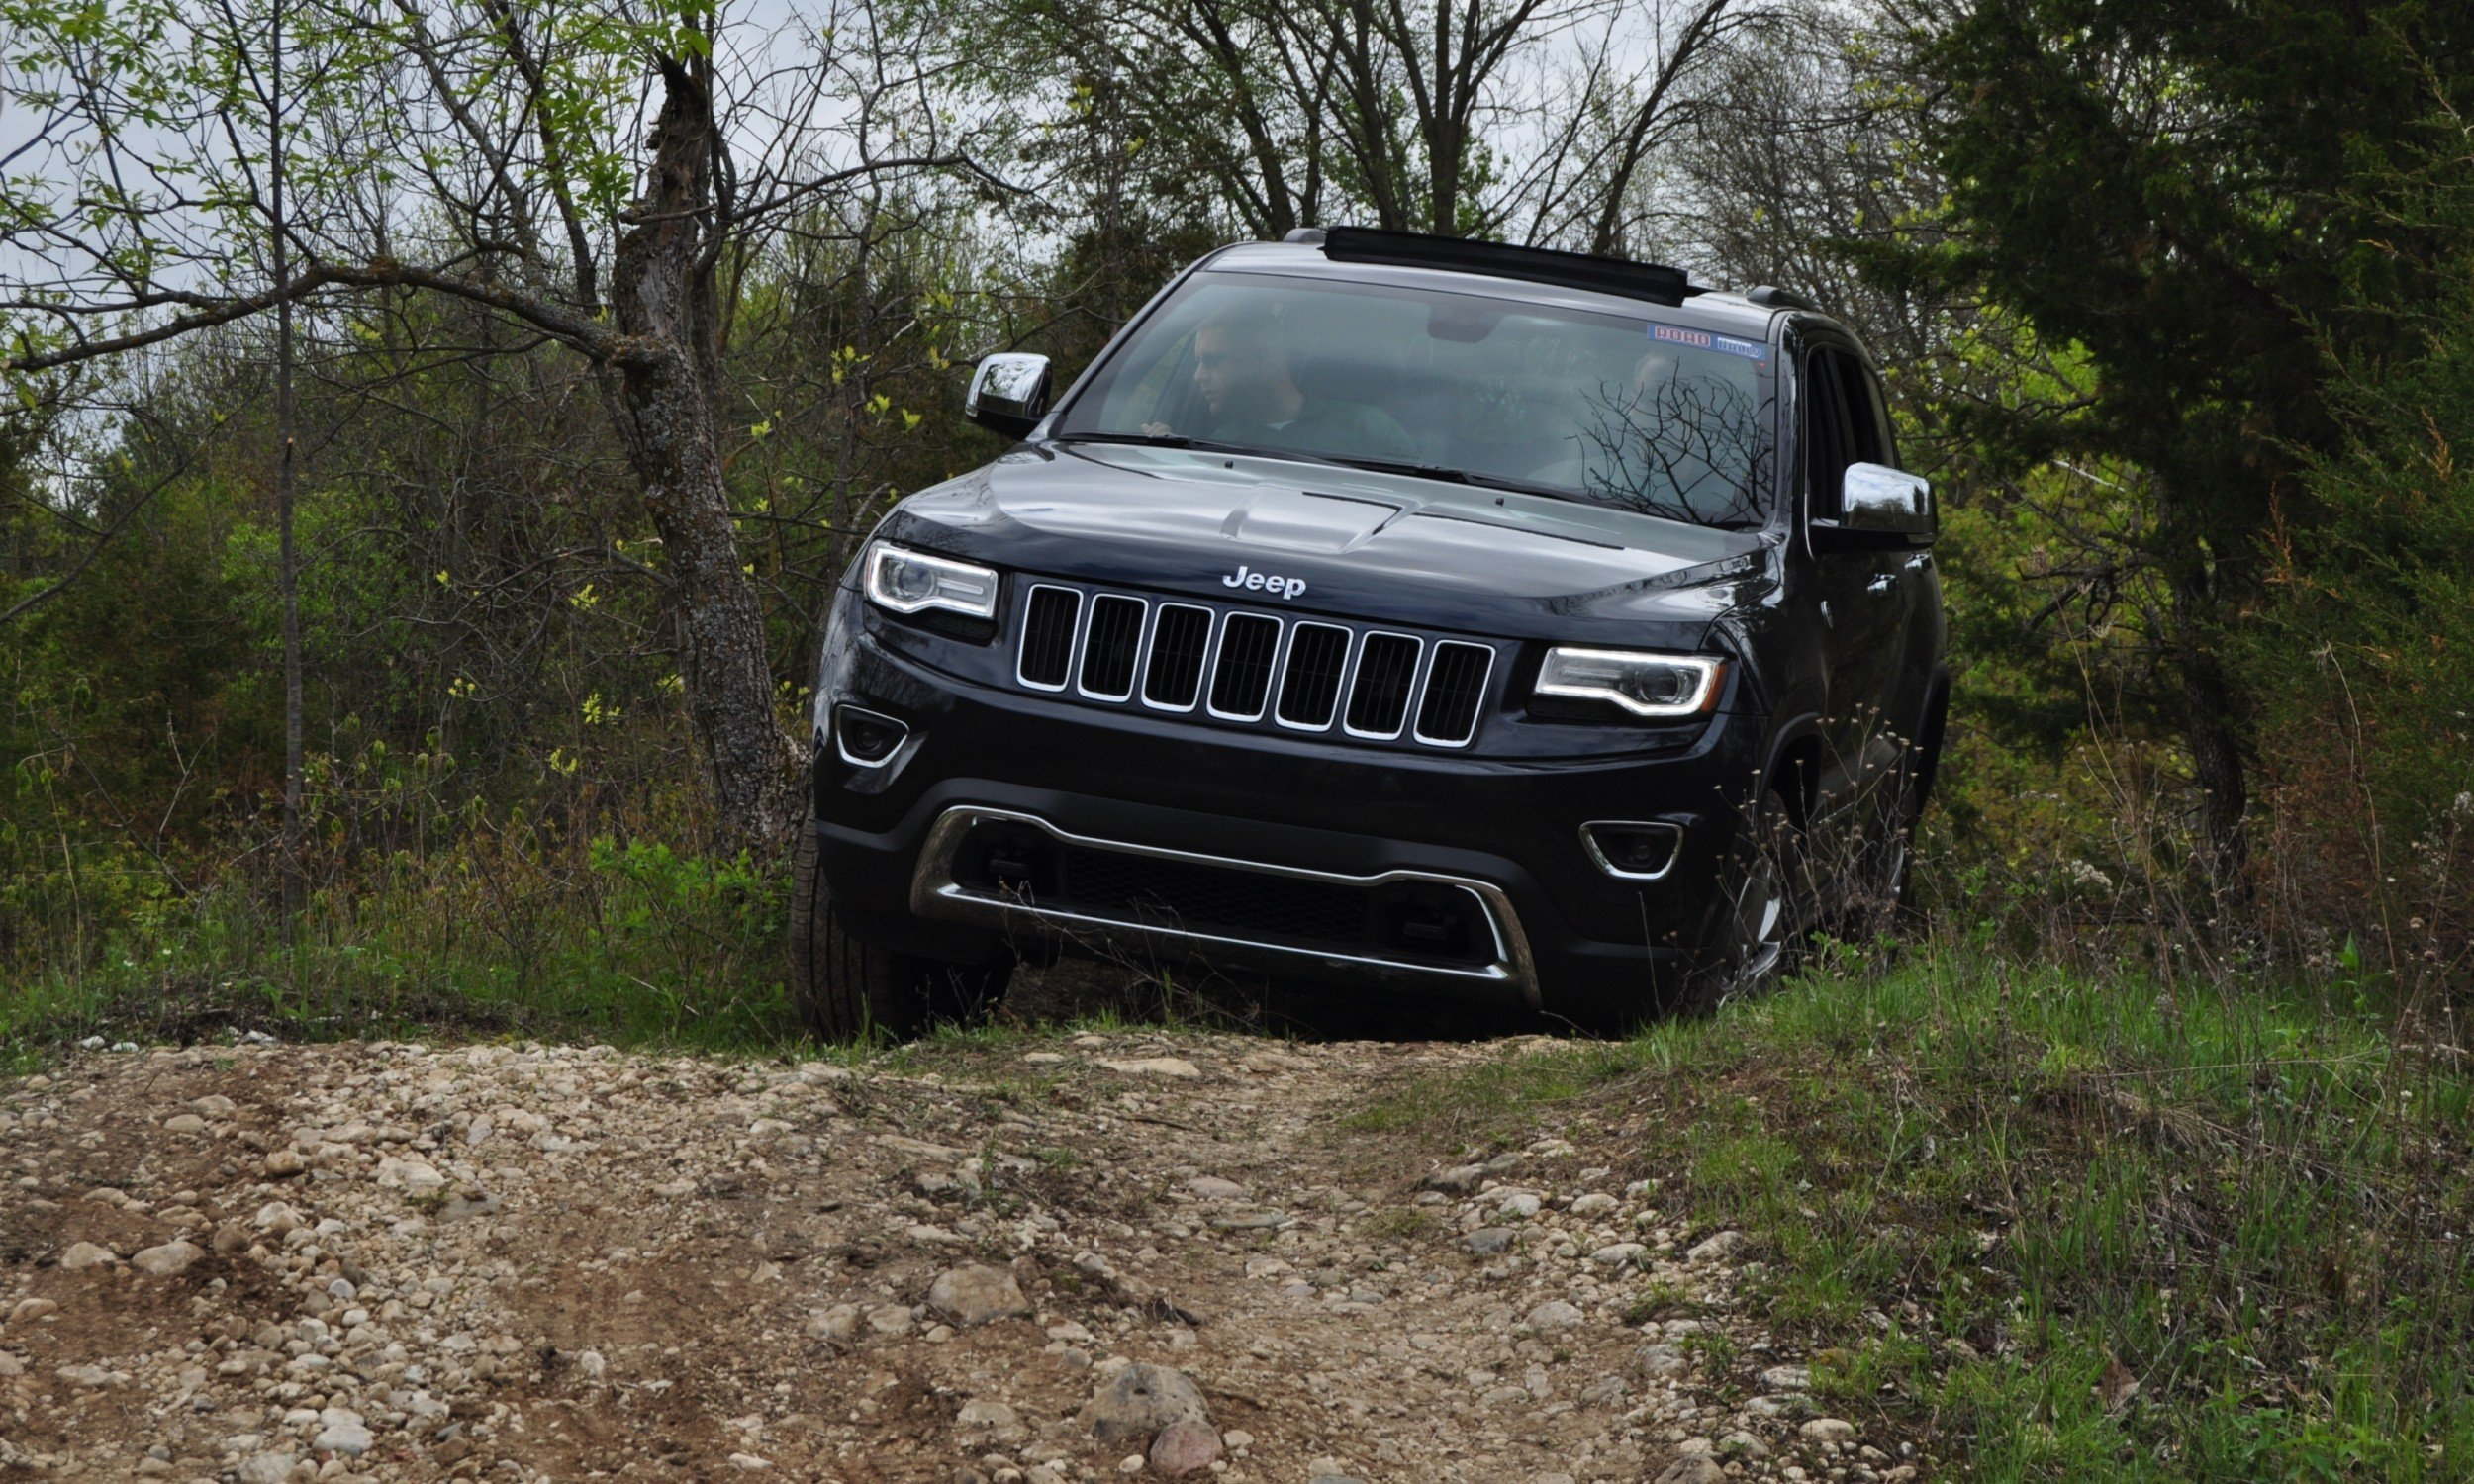 2014-Jeep-Grand-Cherokee-Shows-Its-Trail-Rated-Skills-Off-Road-40.jpg